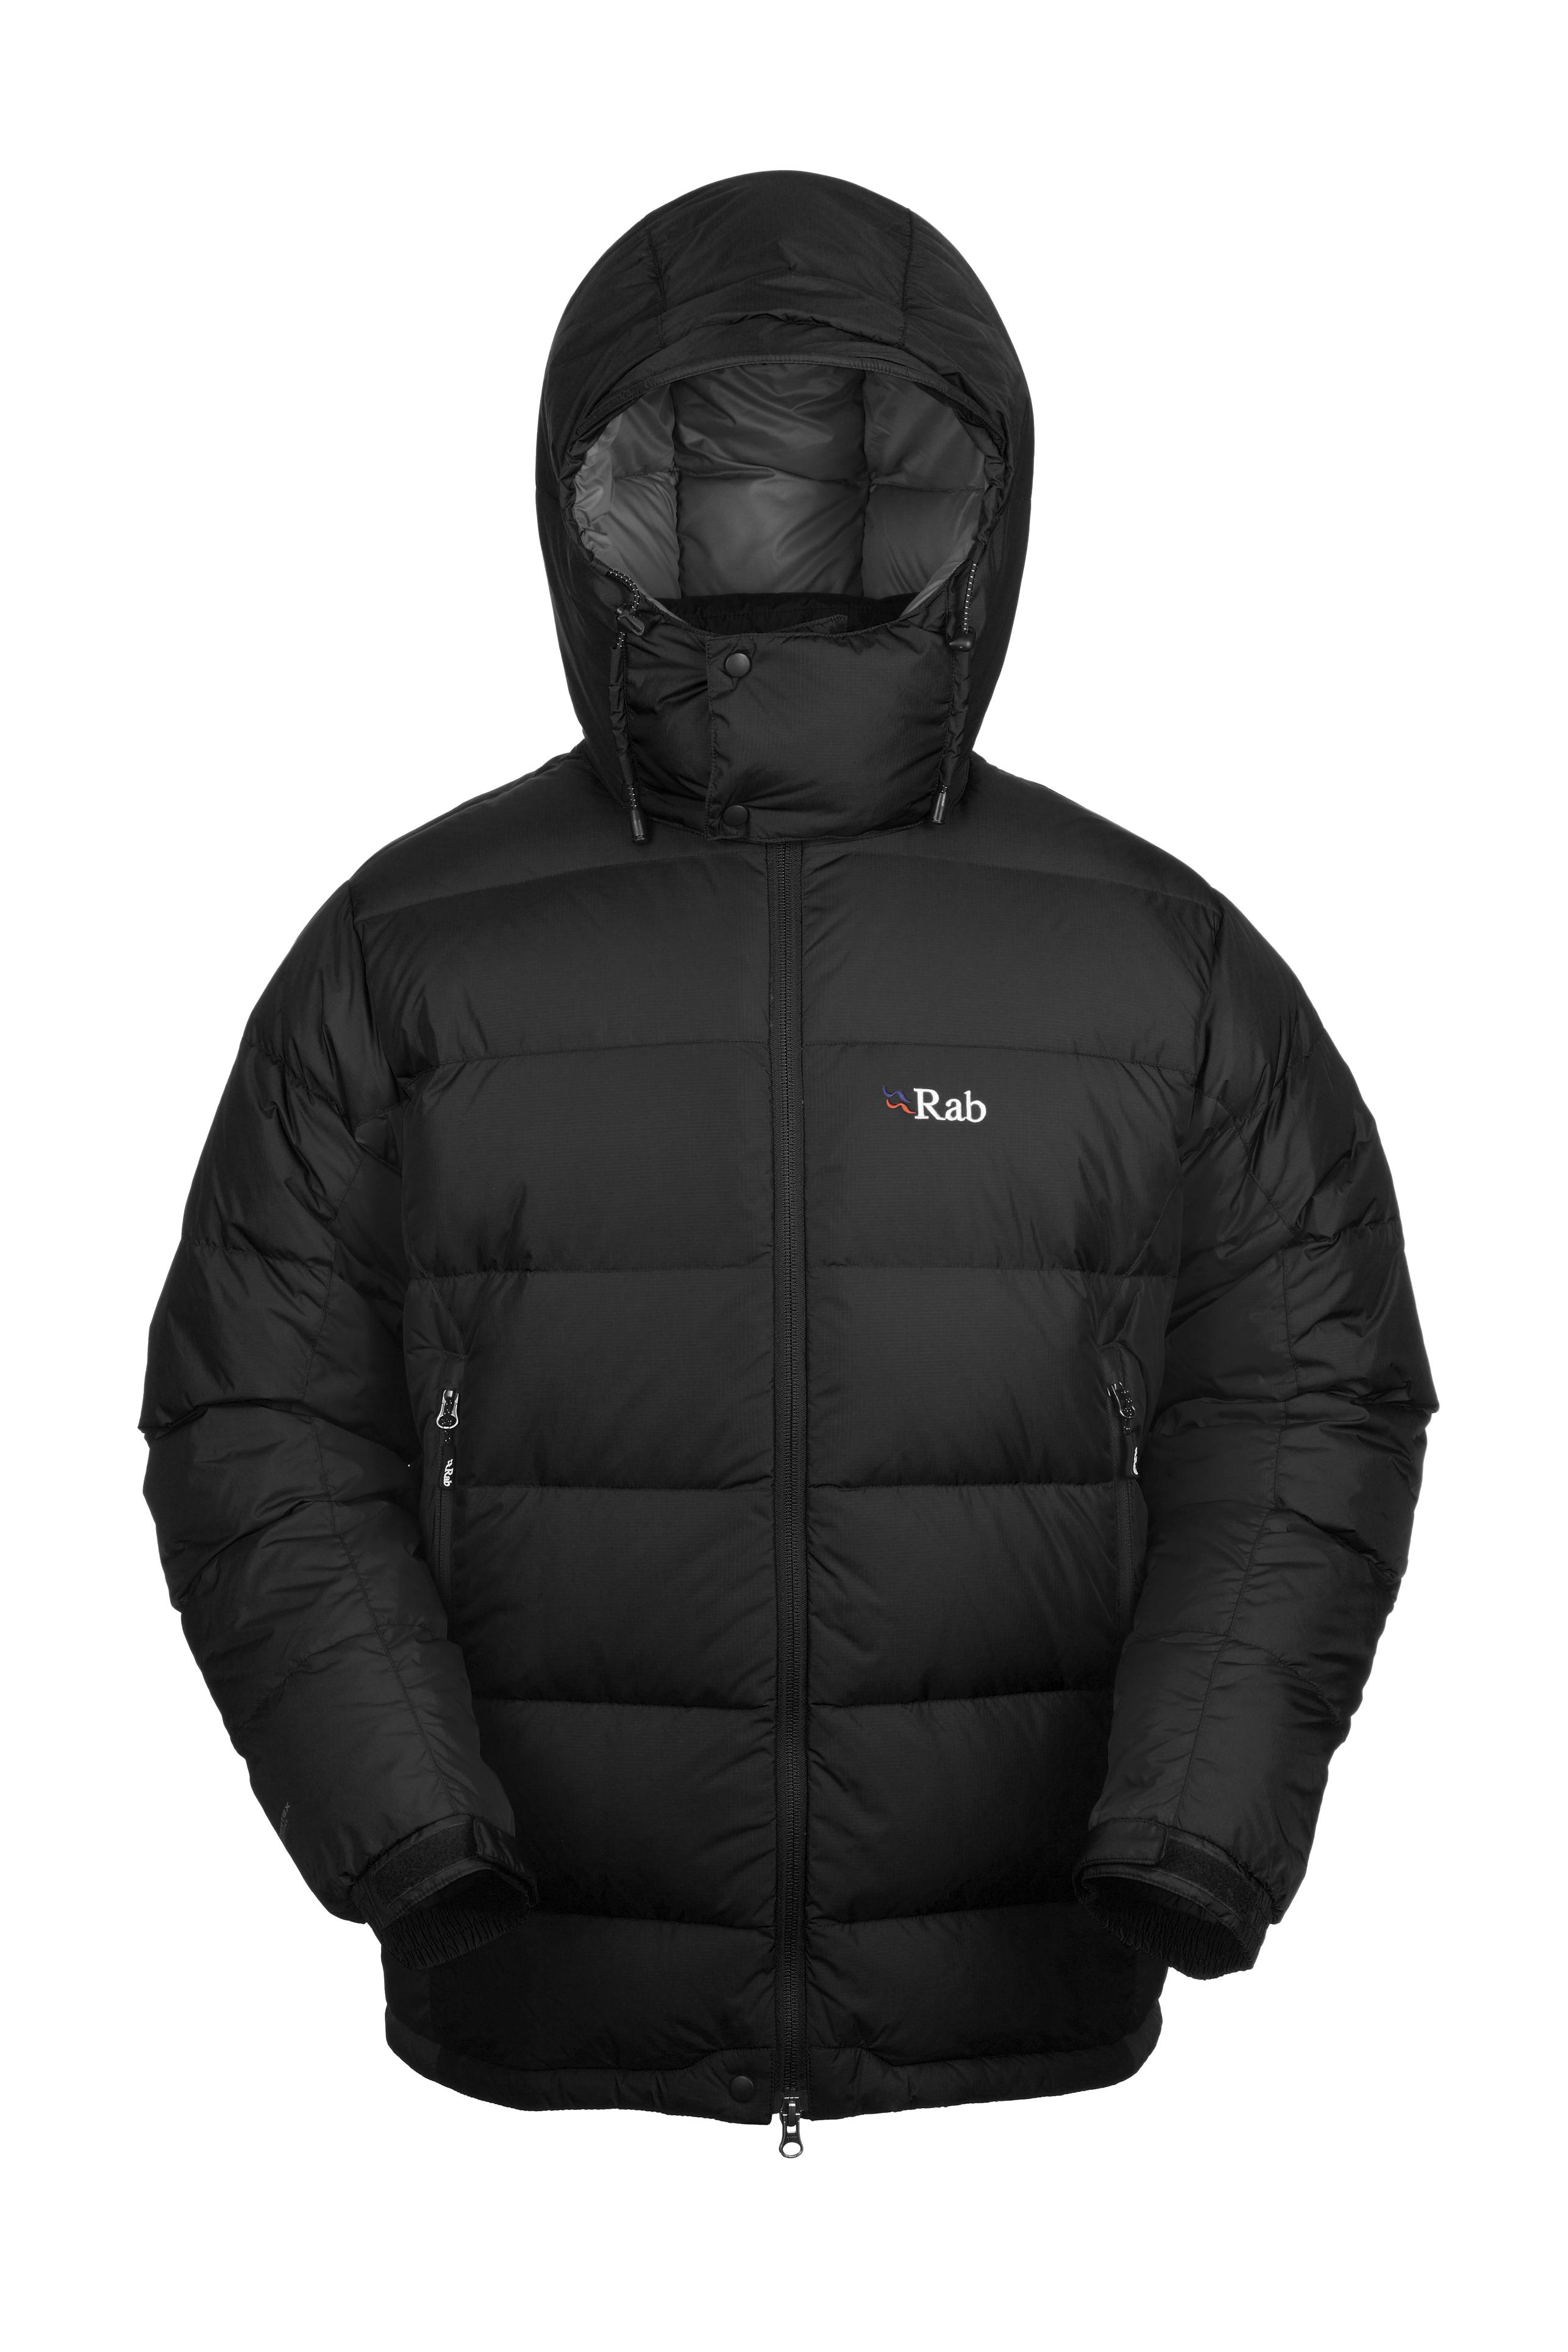 Rab Ascent Men's Down Jacket